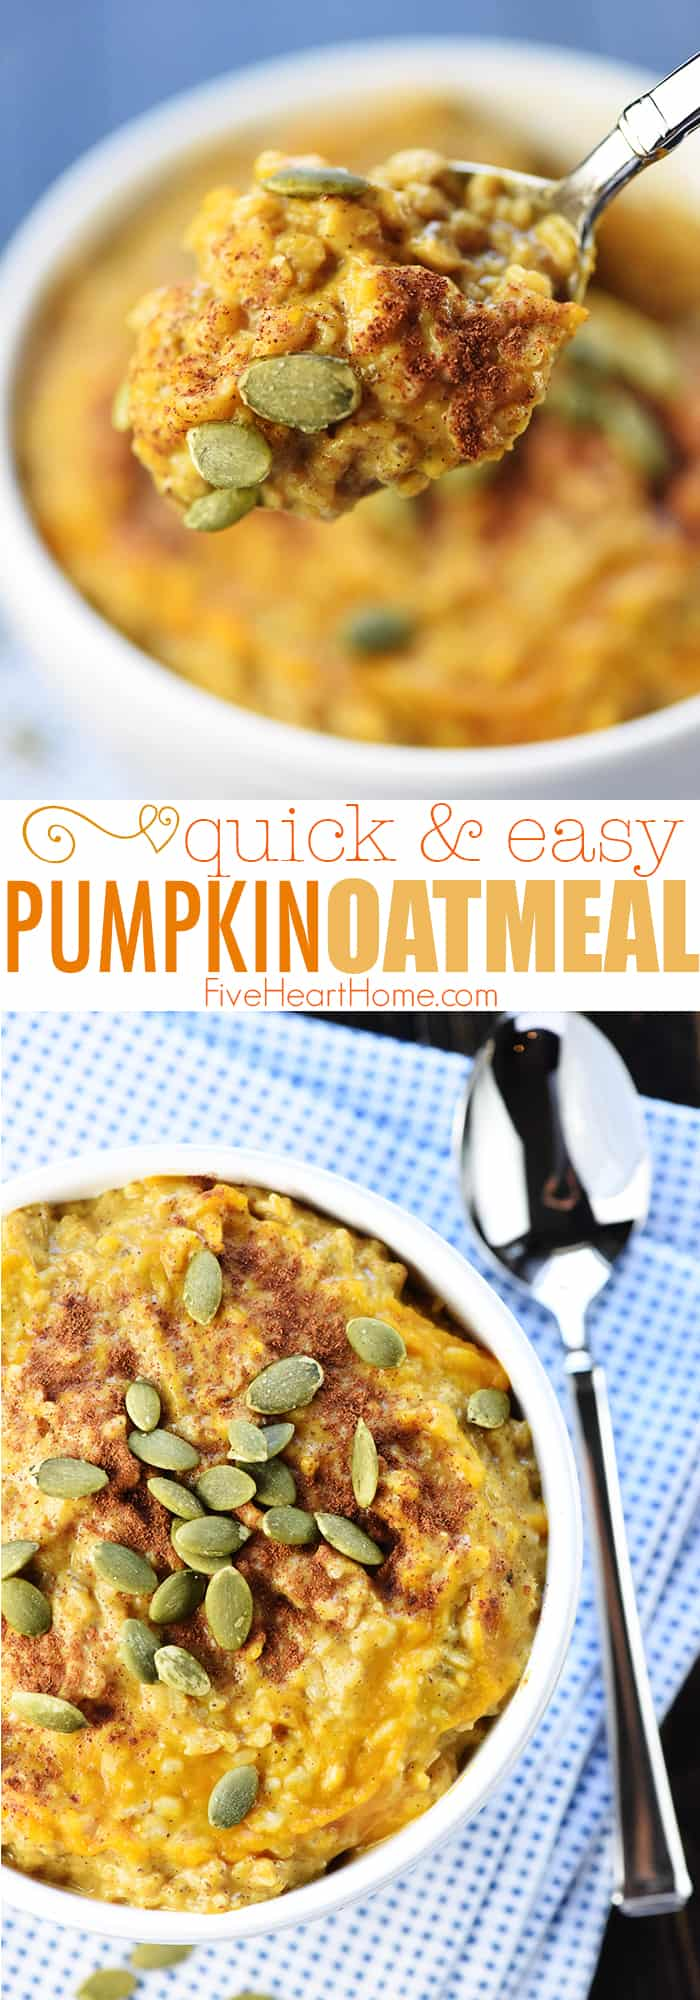 Quick & Easy Pumpkin Oatmeal Collage with Text Overlay